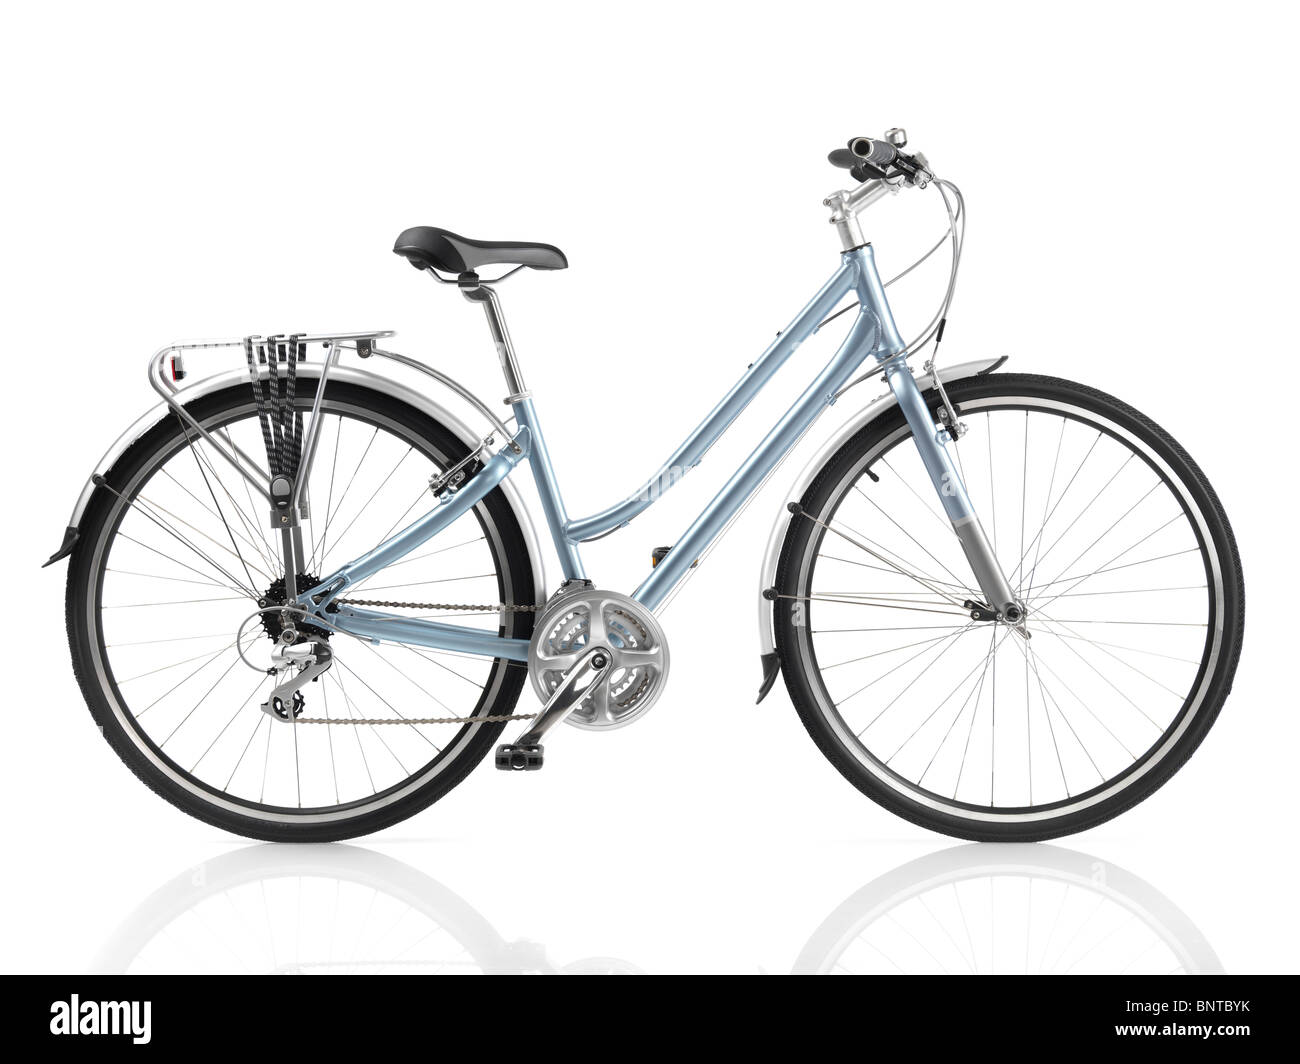 Classic style light blue womens bicycle isolated on white background - Stock Image